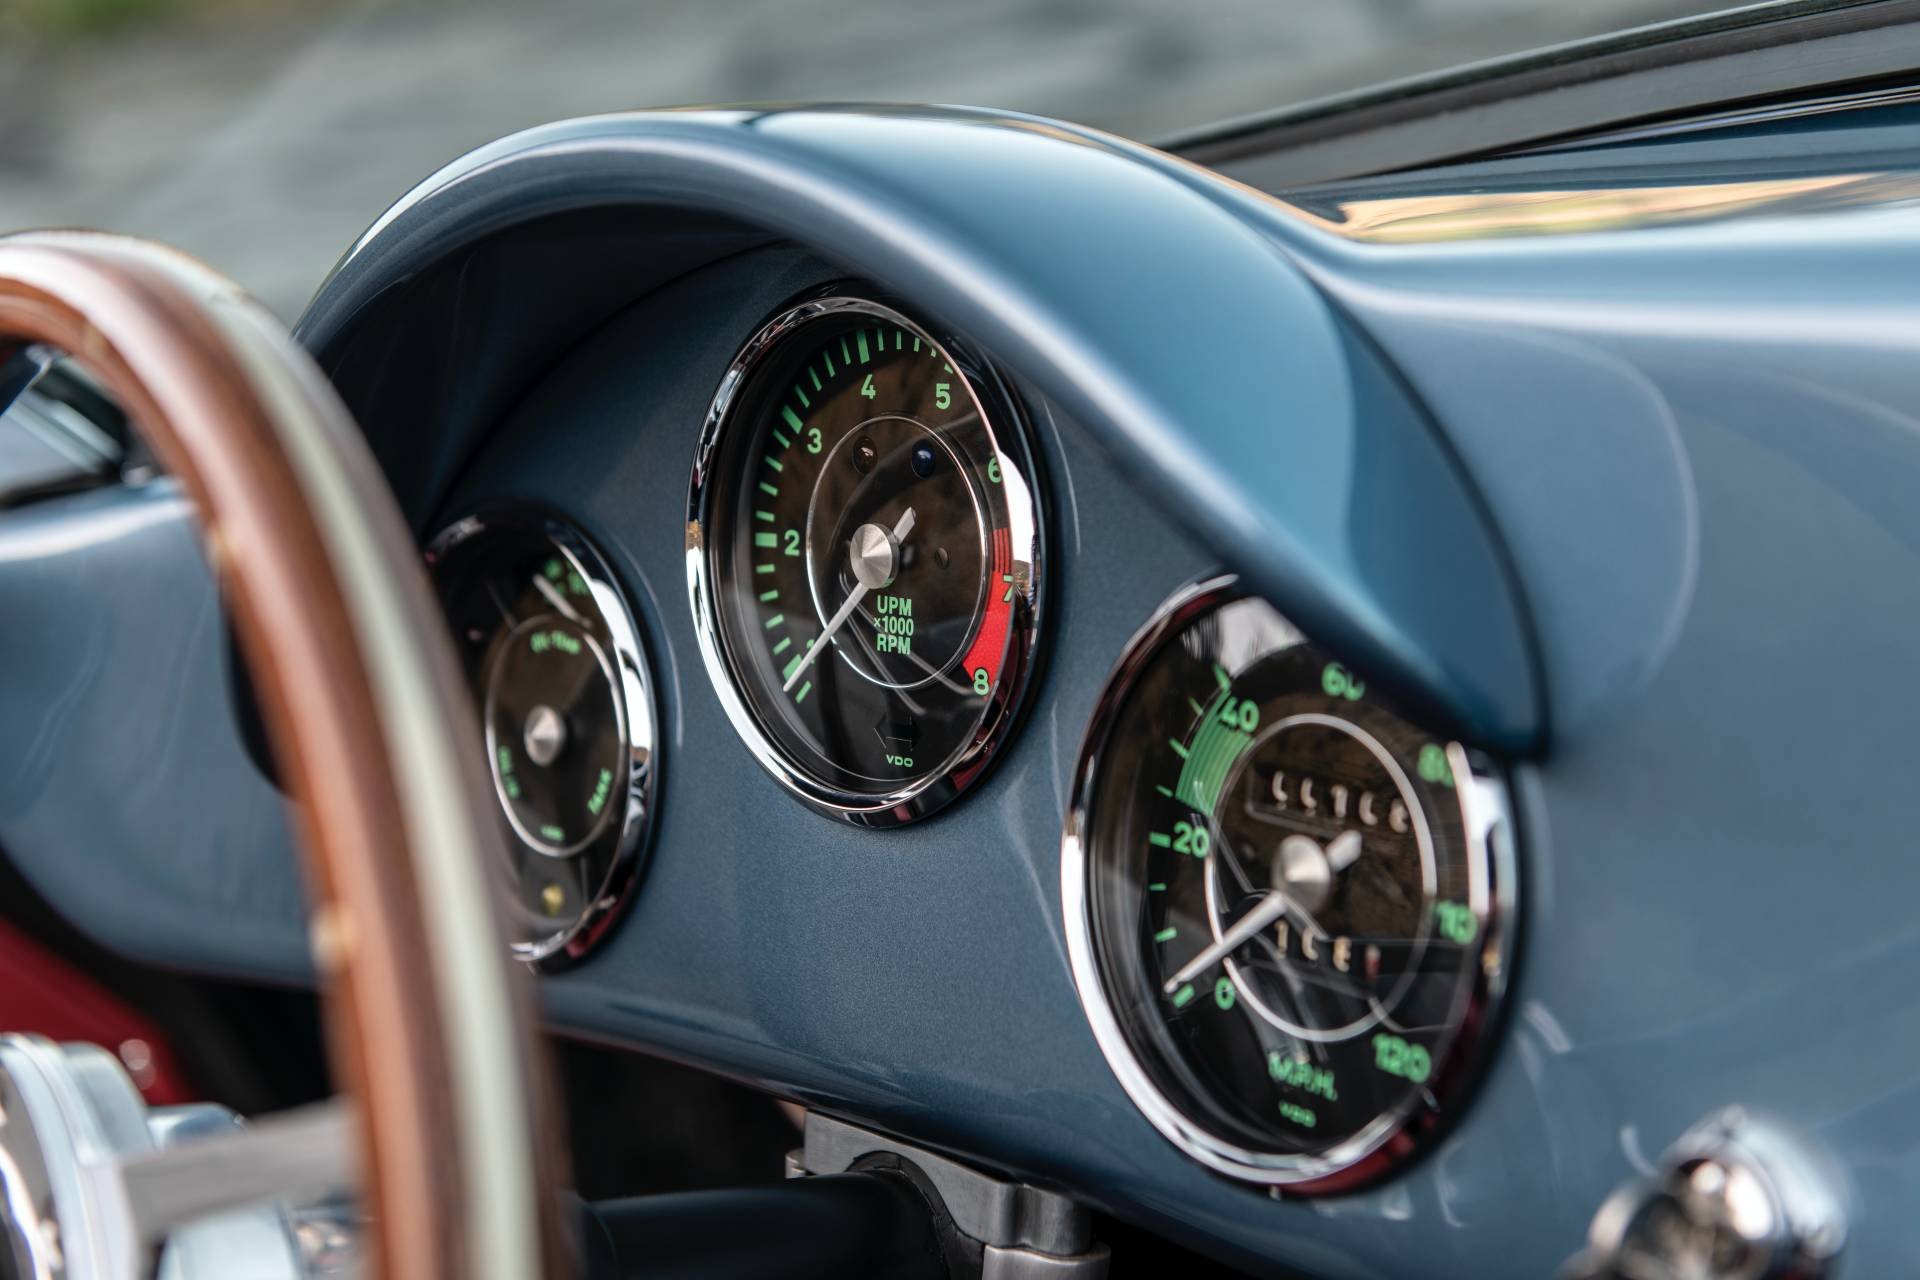 Porsche-356-Speedster-1959-Aquamarine-Transitional-By-Emory-Motorsport-34